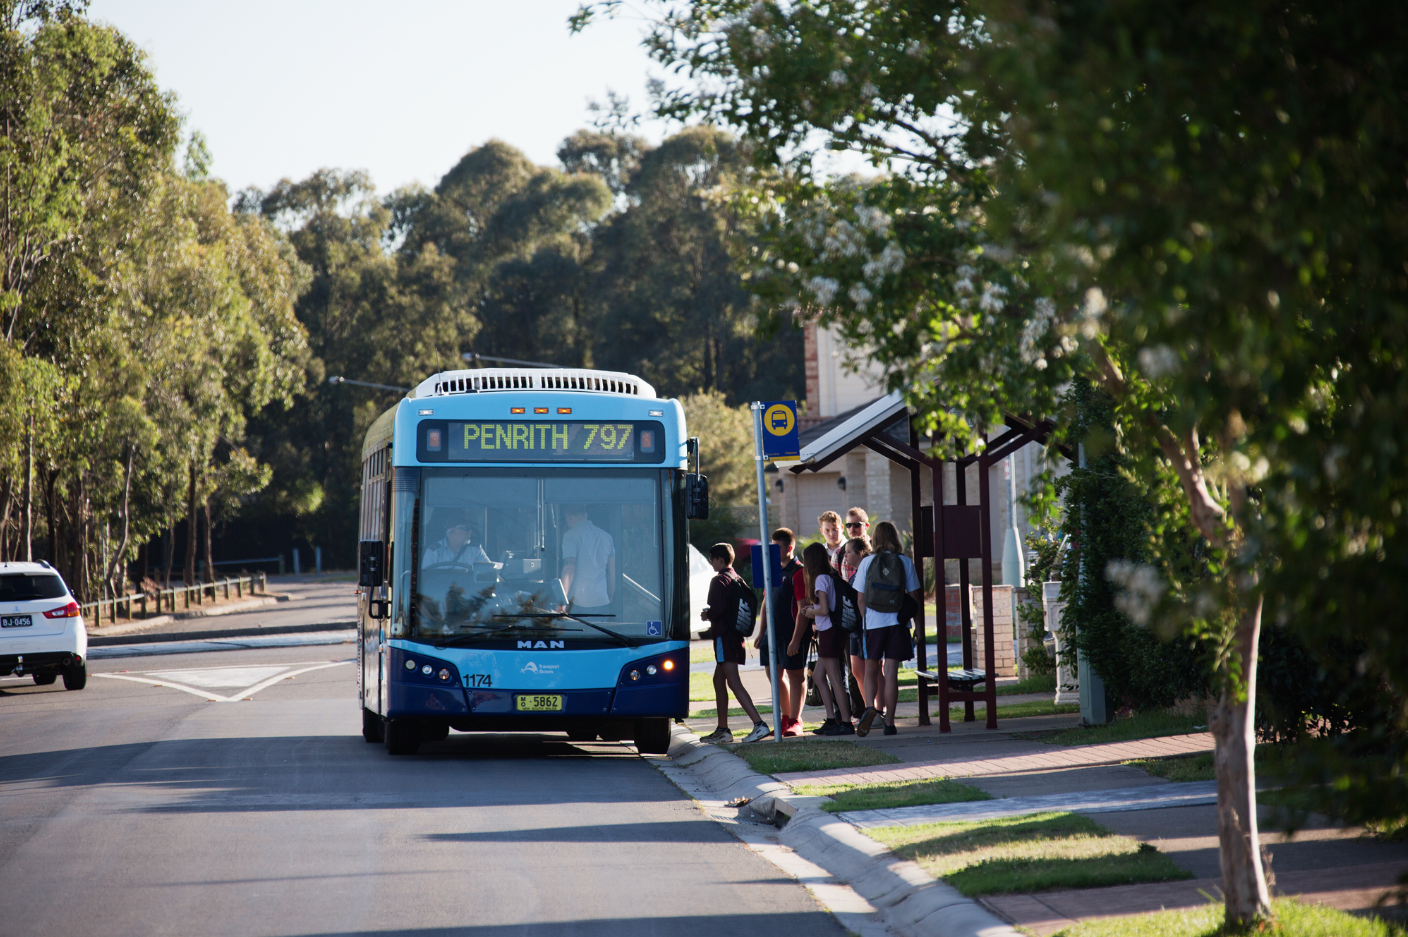 Bus - Mulgoa Sanctuary